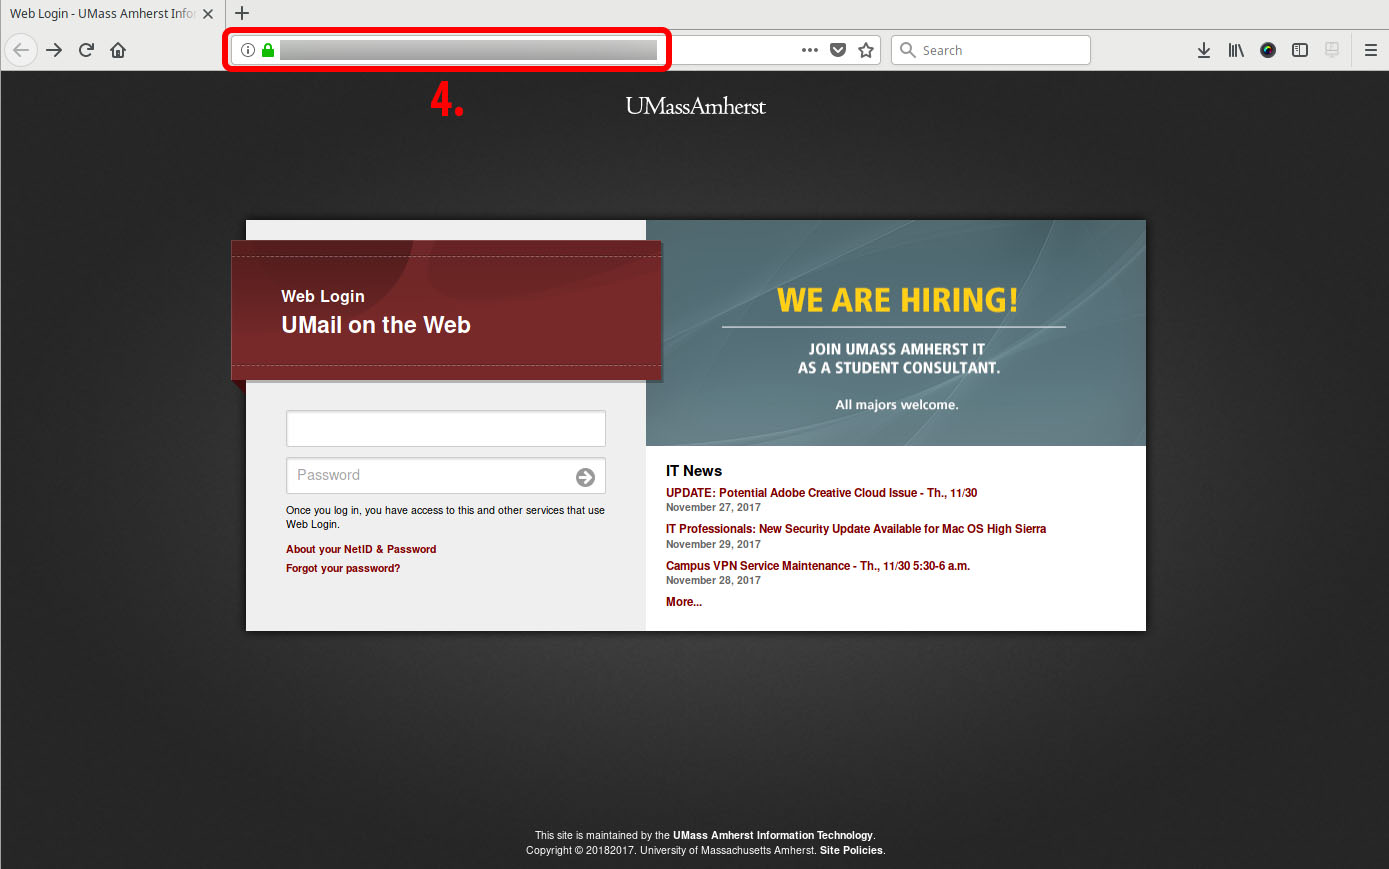 Fake login page example feb 23 with non-umass web address